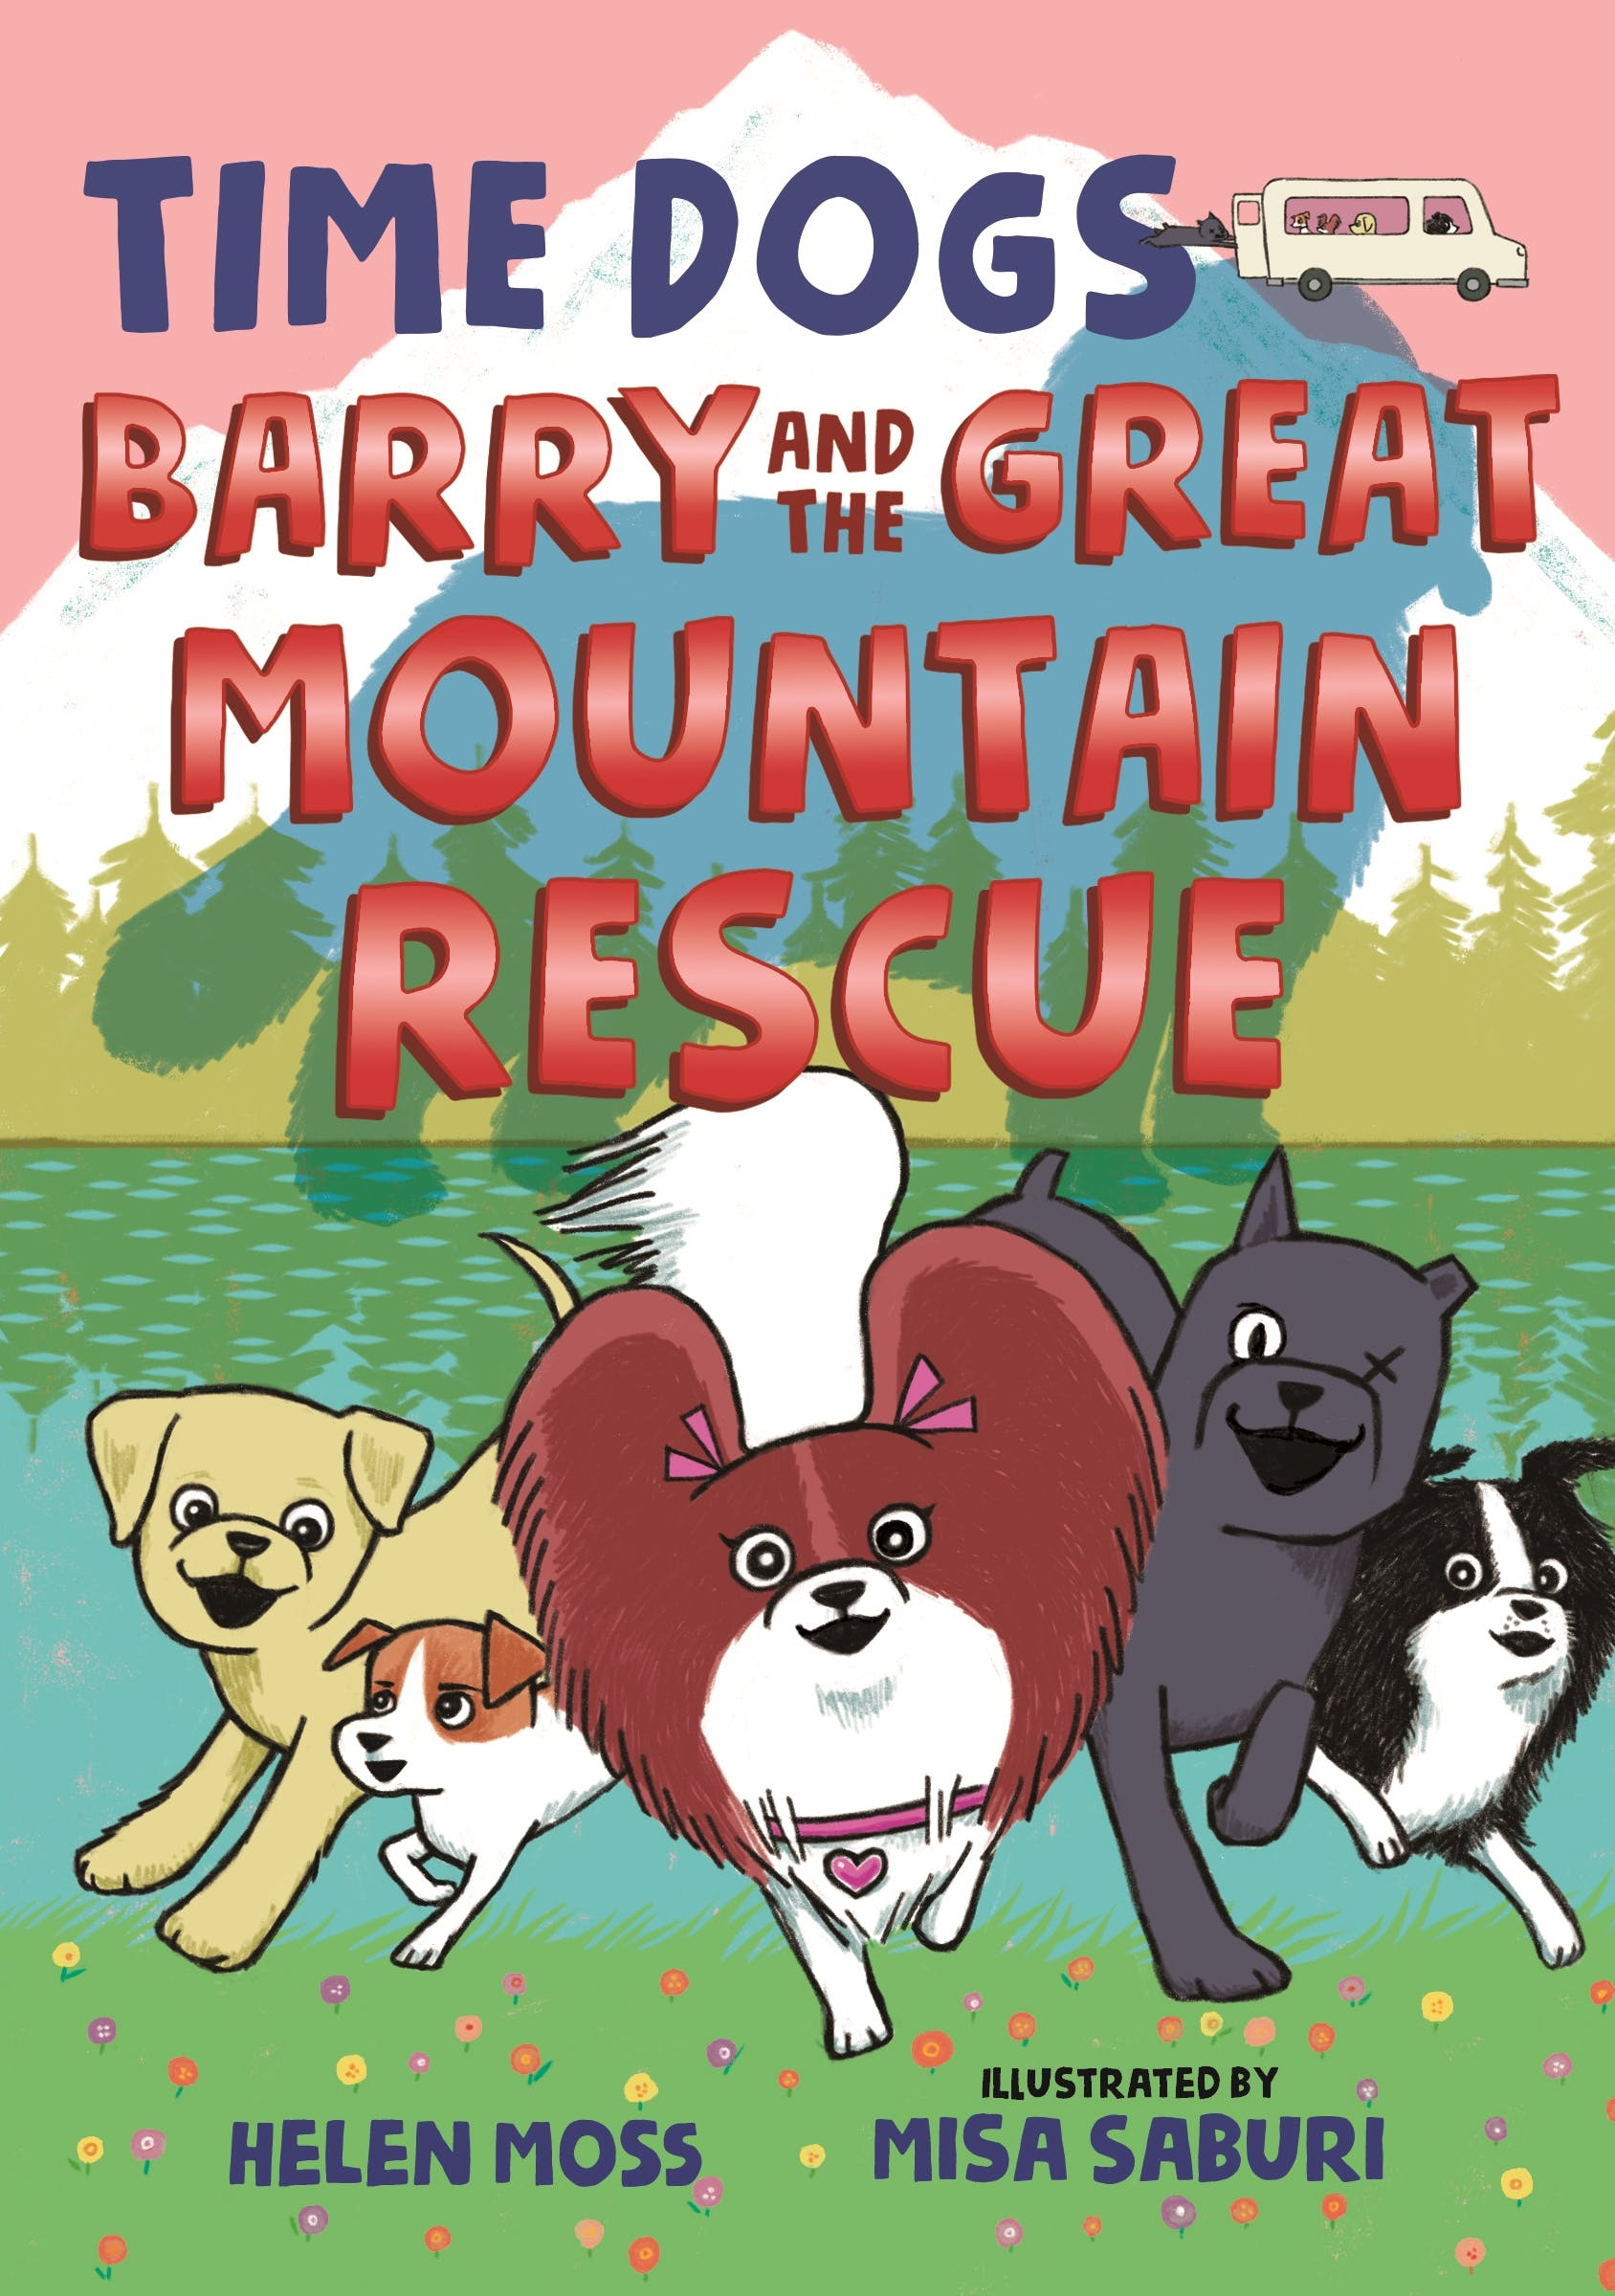 Image of Time Dogs: Barry and the Great Mountain Rescue